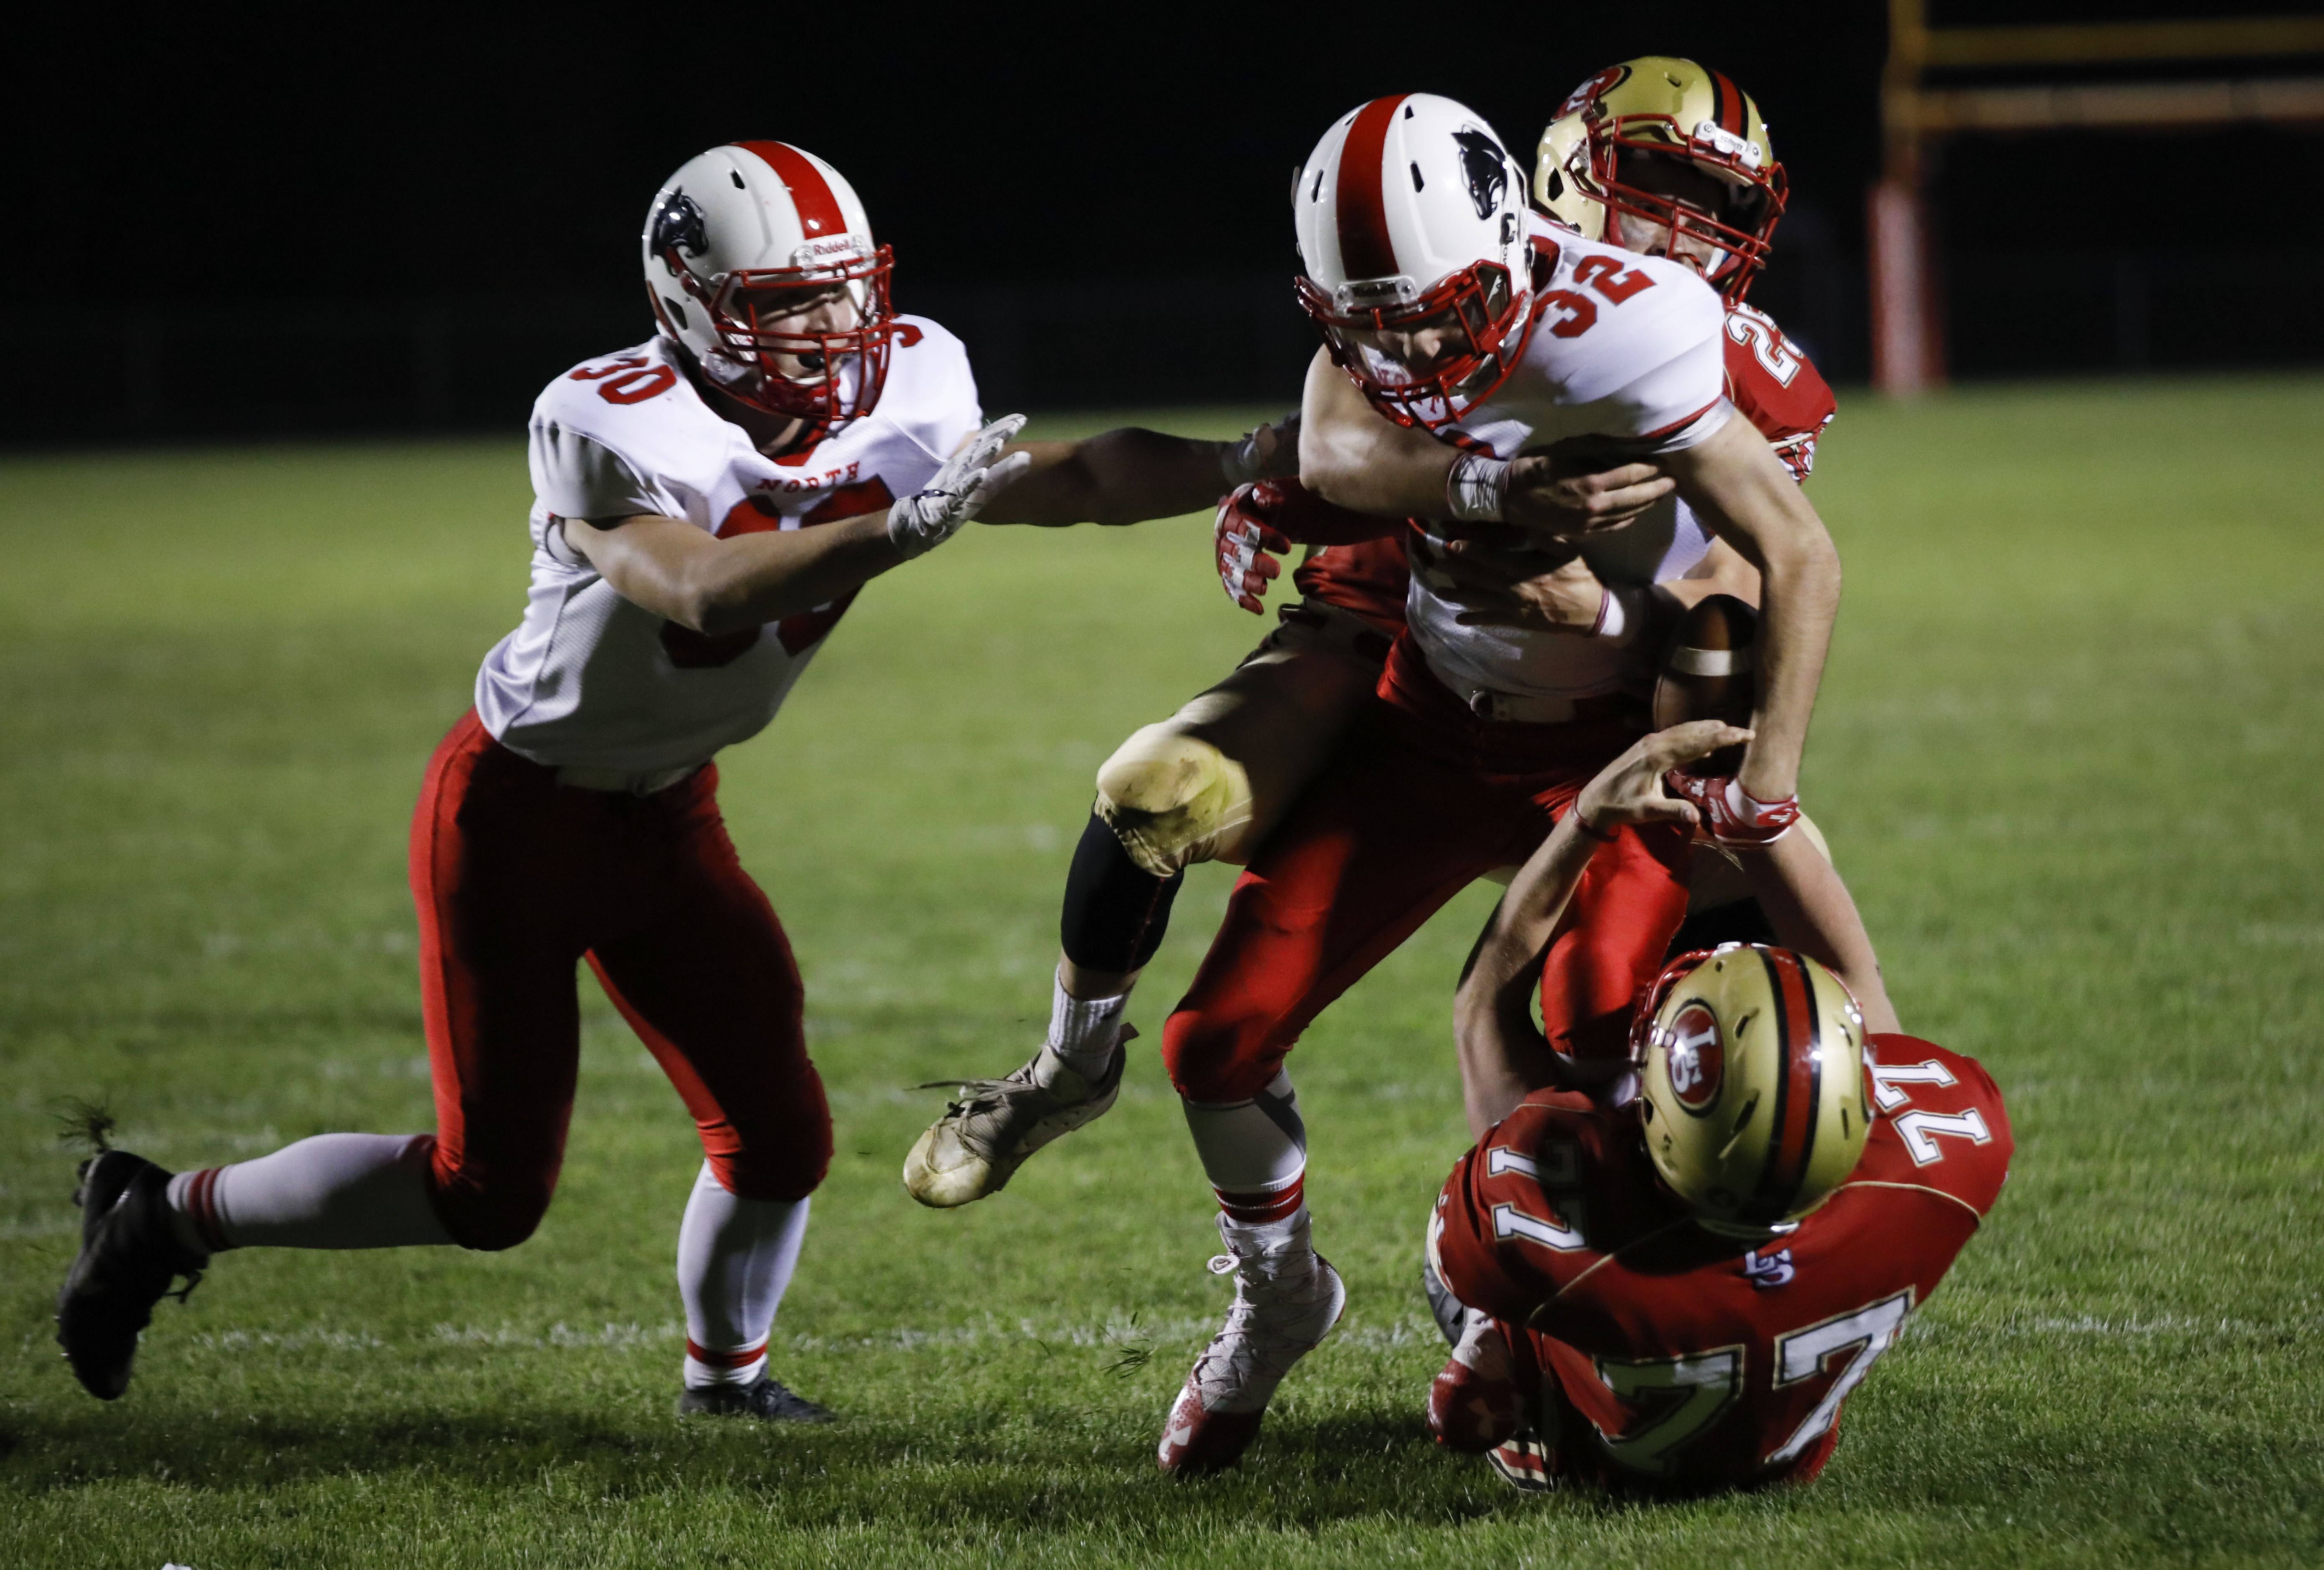 Jack Branson (32) of Lakeville North is tackled by Carter Hagen (25) and #77 of Lakeville South. Lakeville North defeated rival Lakeville South 35-0 away. Photo by Chris Juhn